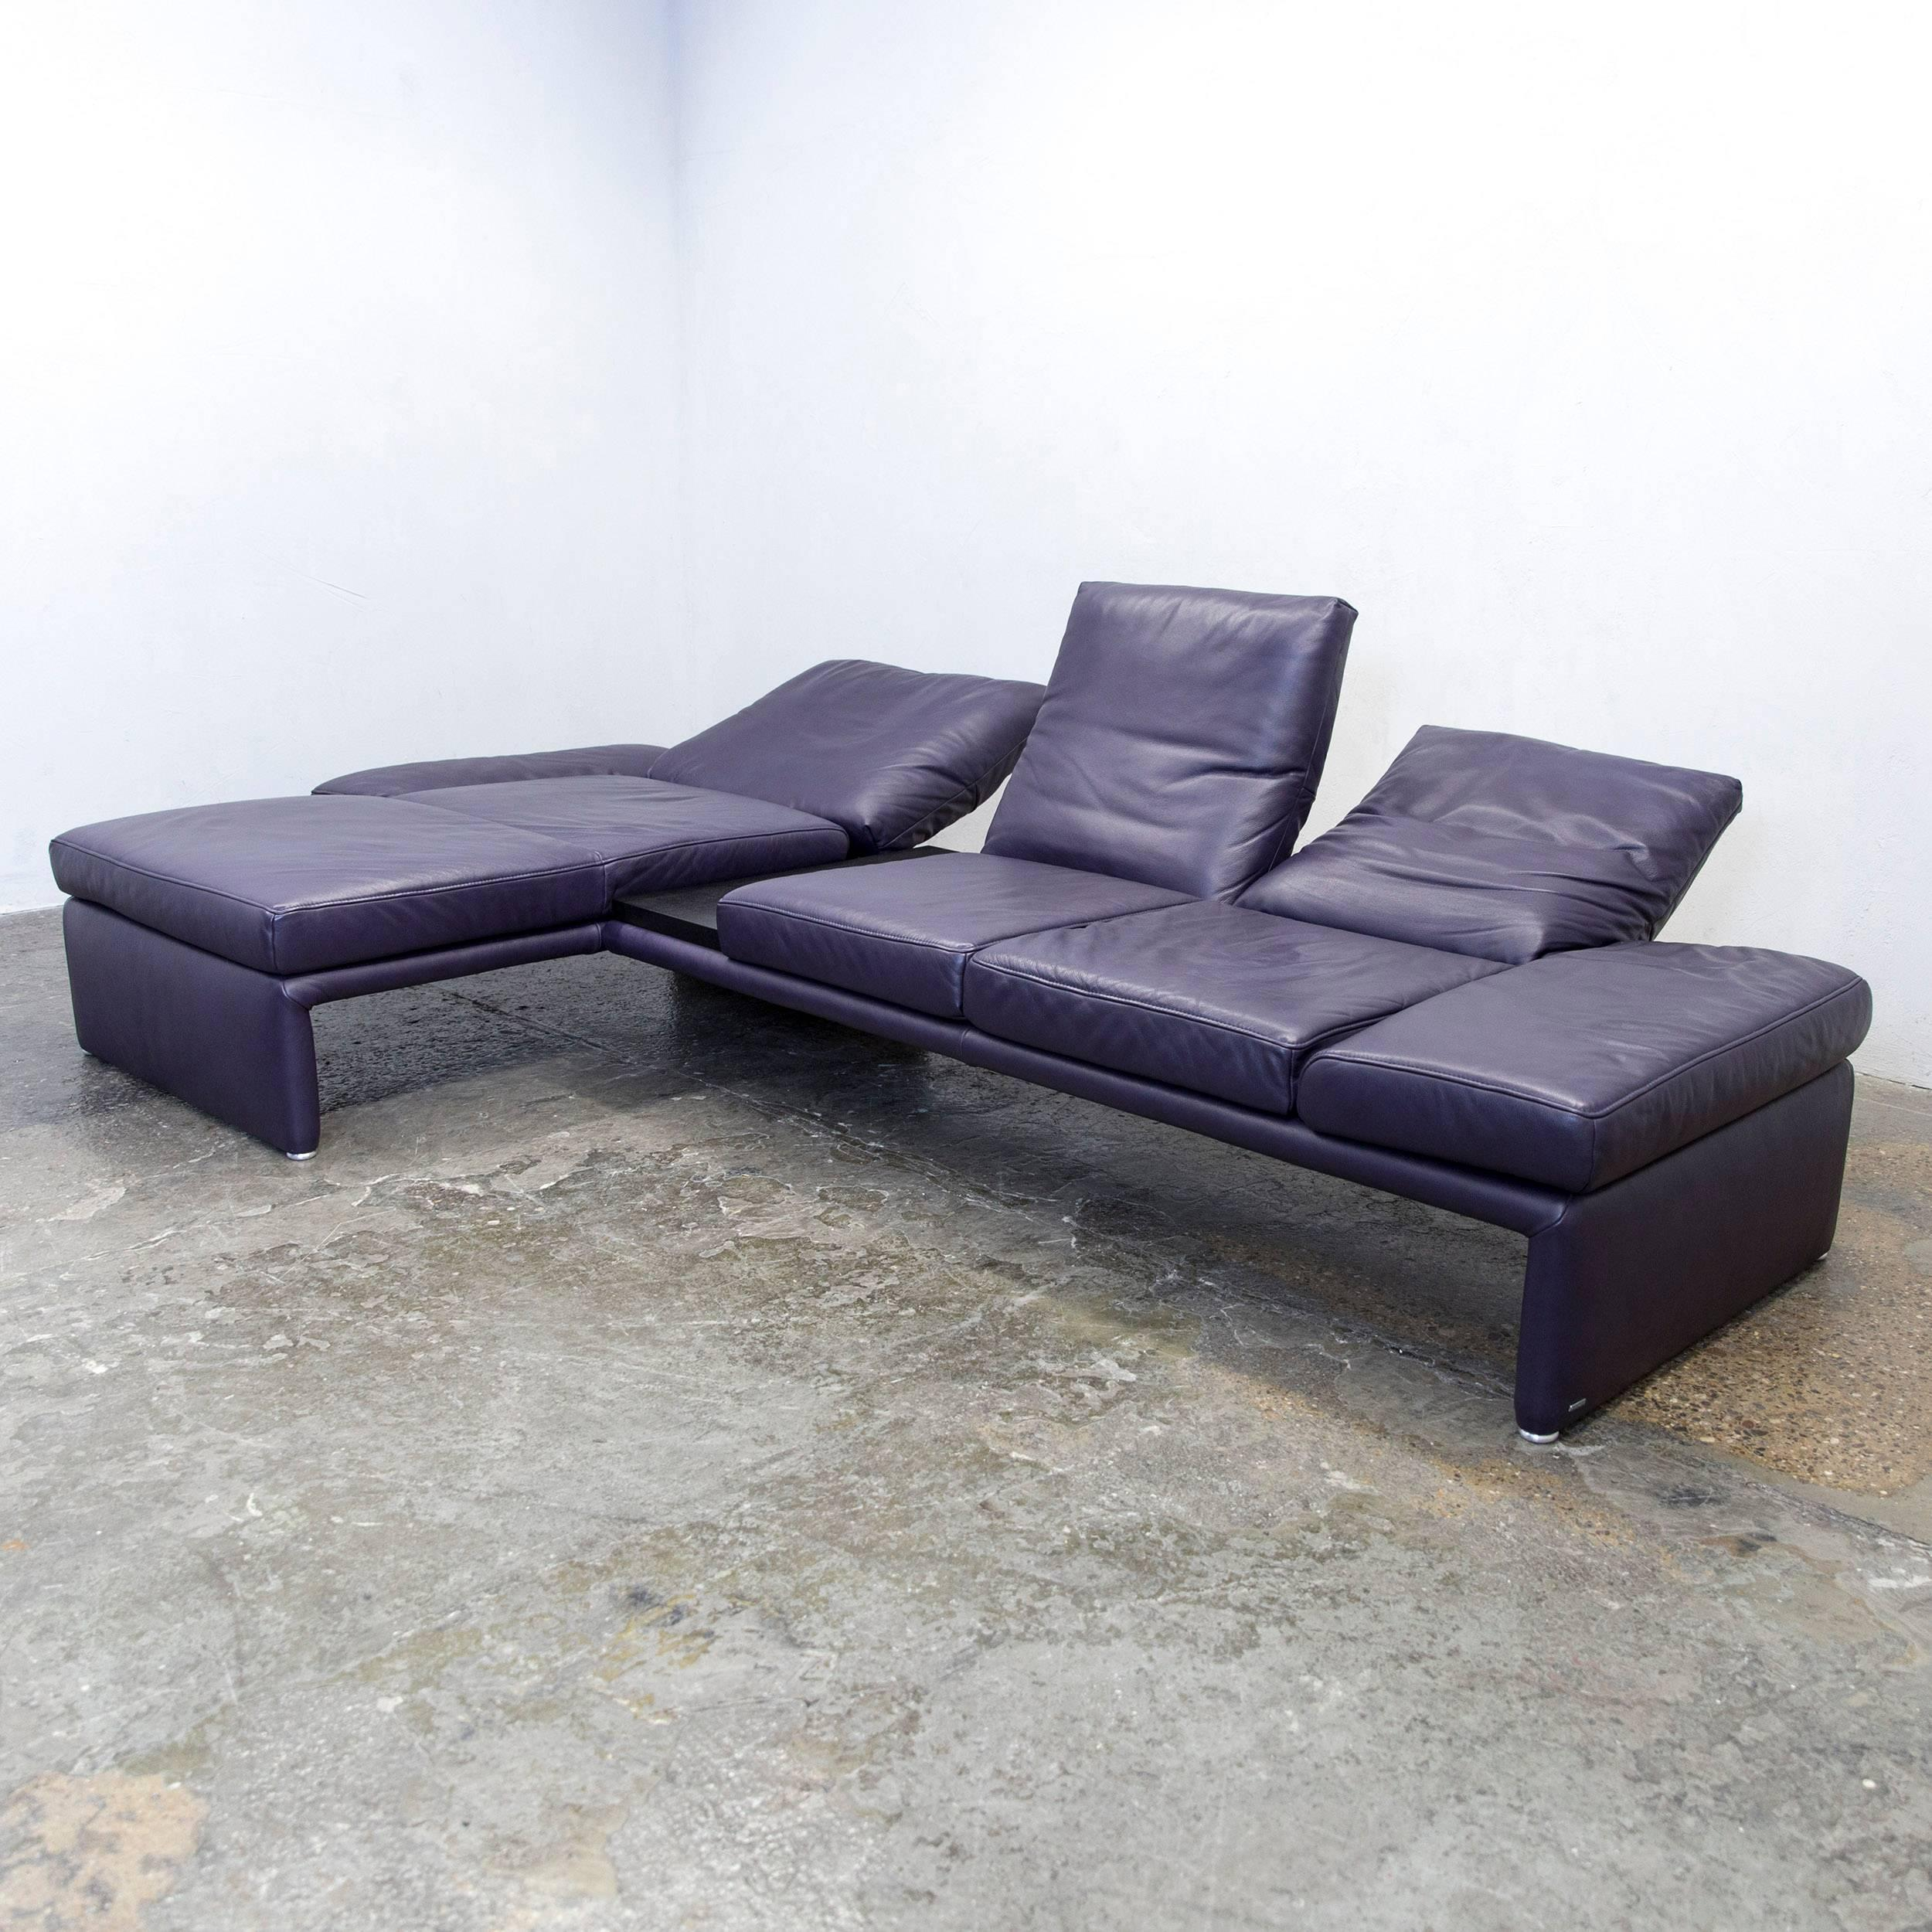 Koinor sofa leder great koinor modell omega garnitur in for Funktions ecksofa